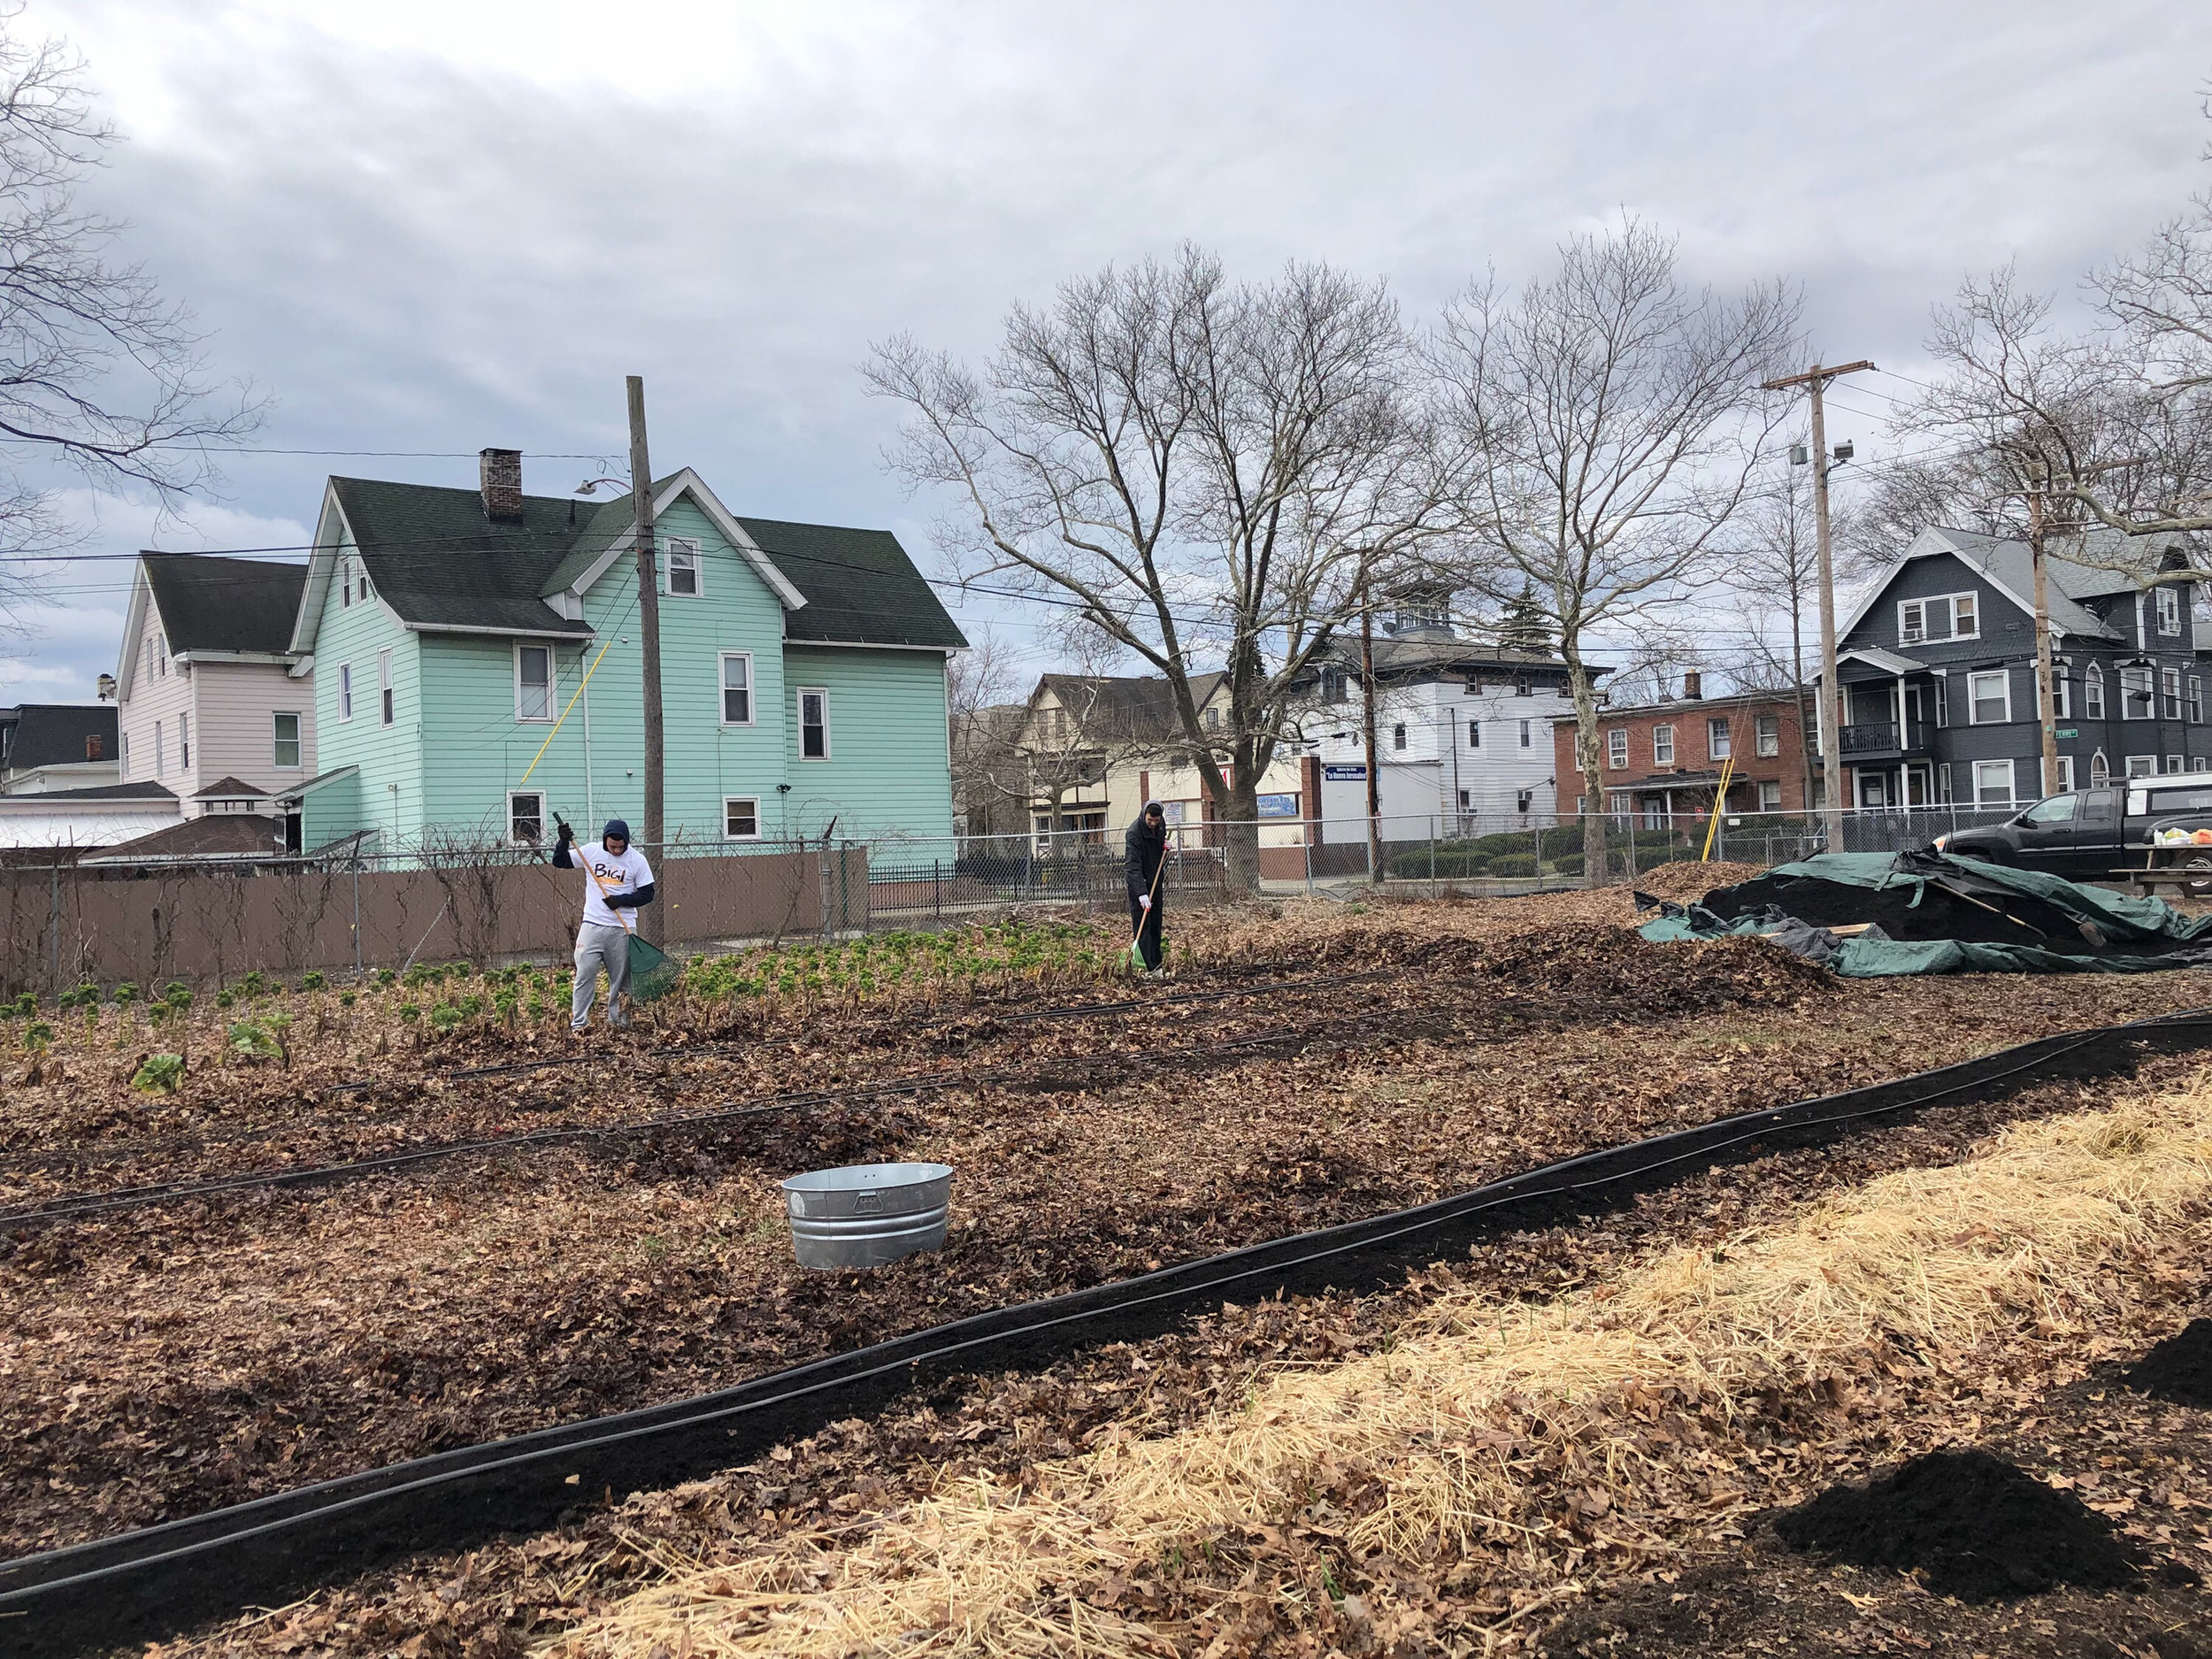 More Zeta Beta Tau fraternity brothers cleaning up the grounds in a New Haven garden.